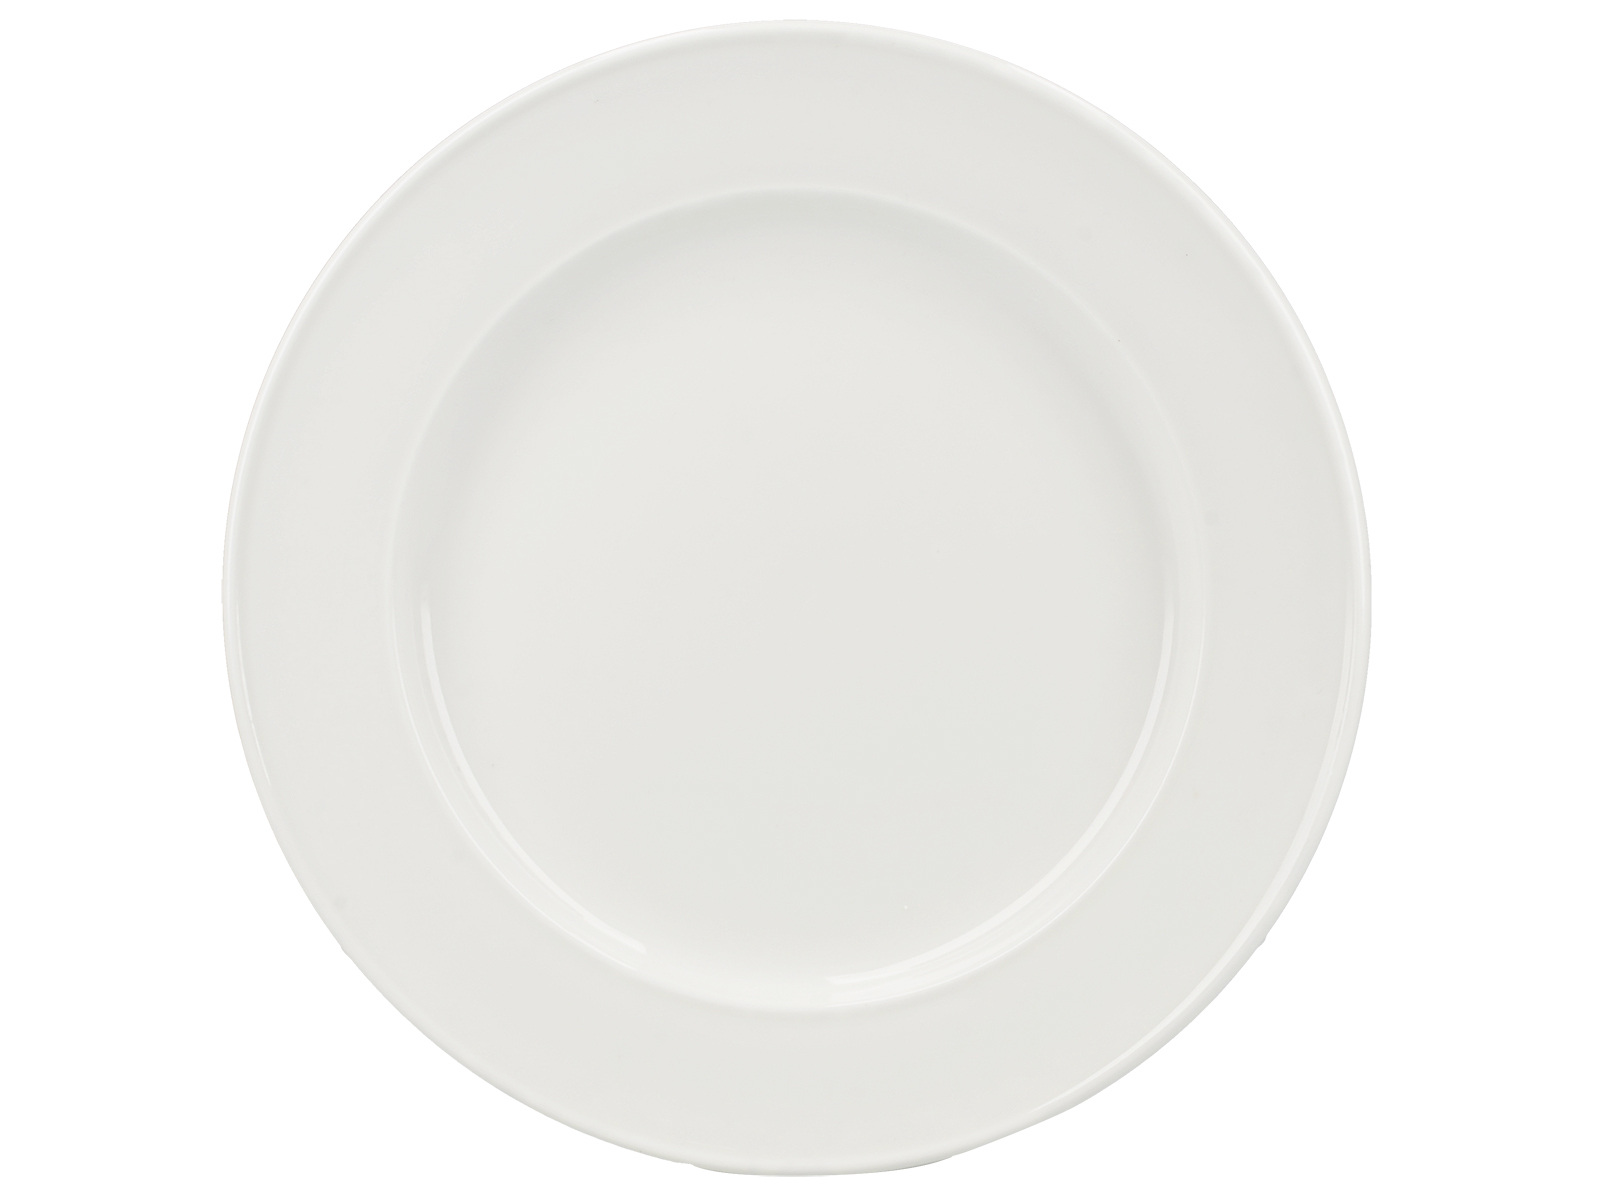 M By Mikasa Whiteware Bread Plate